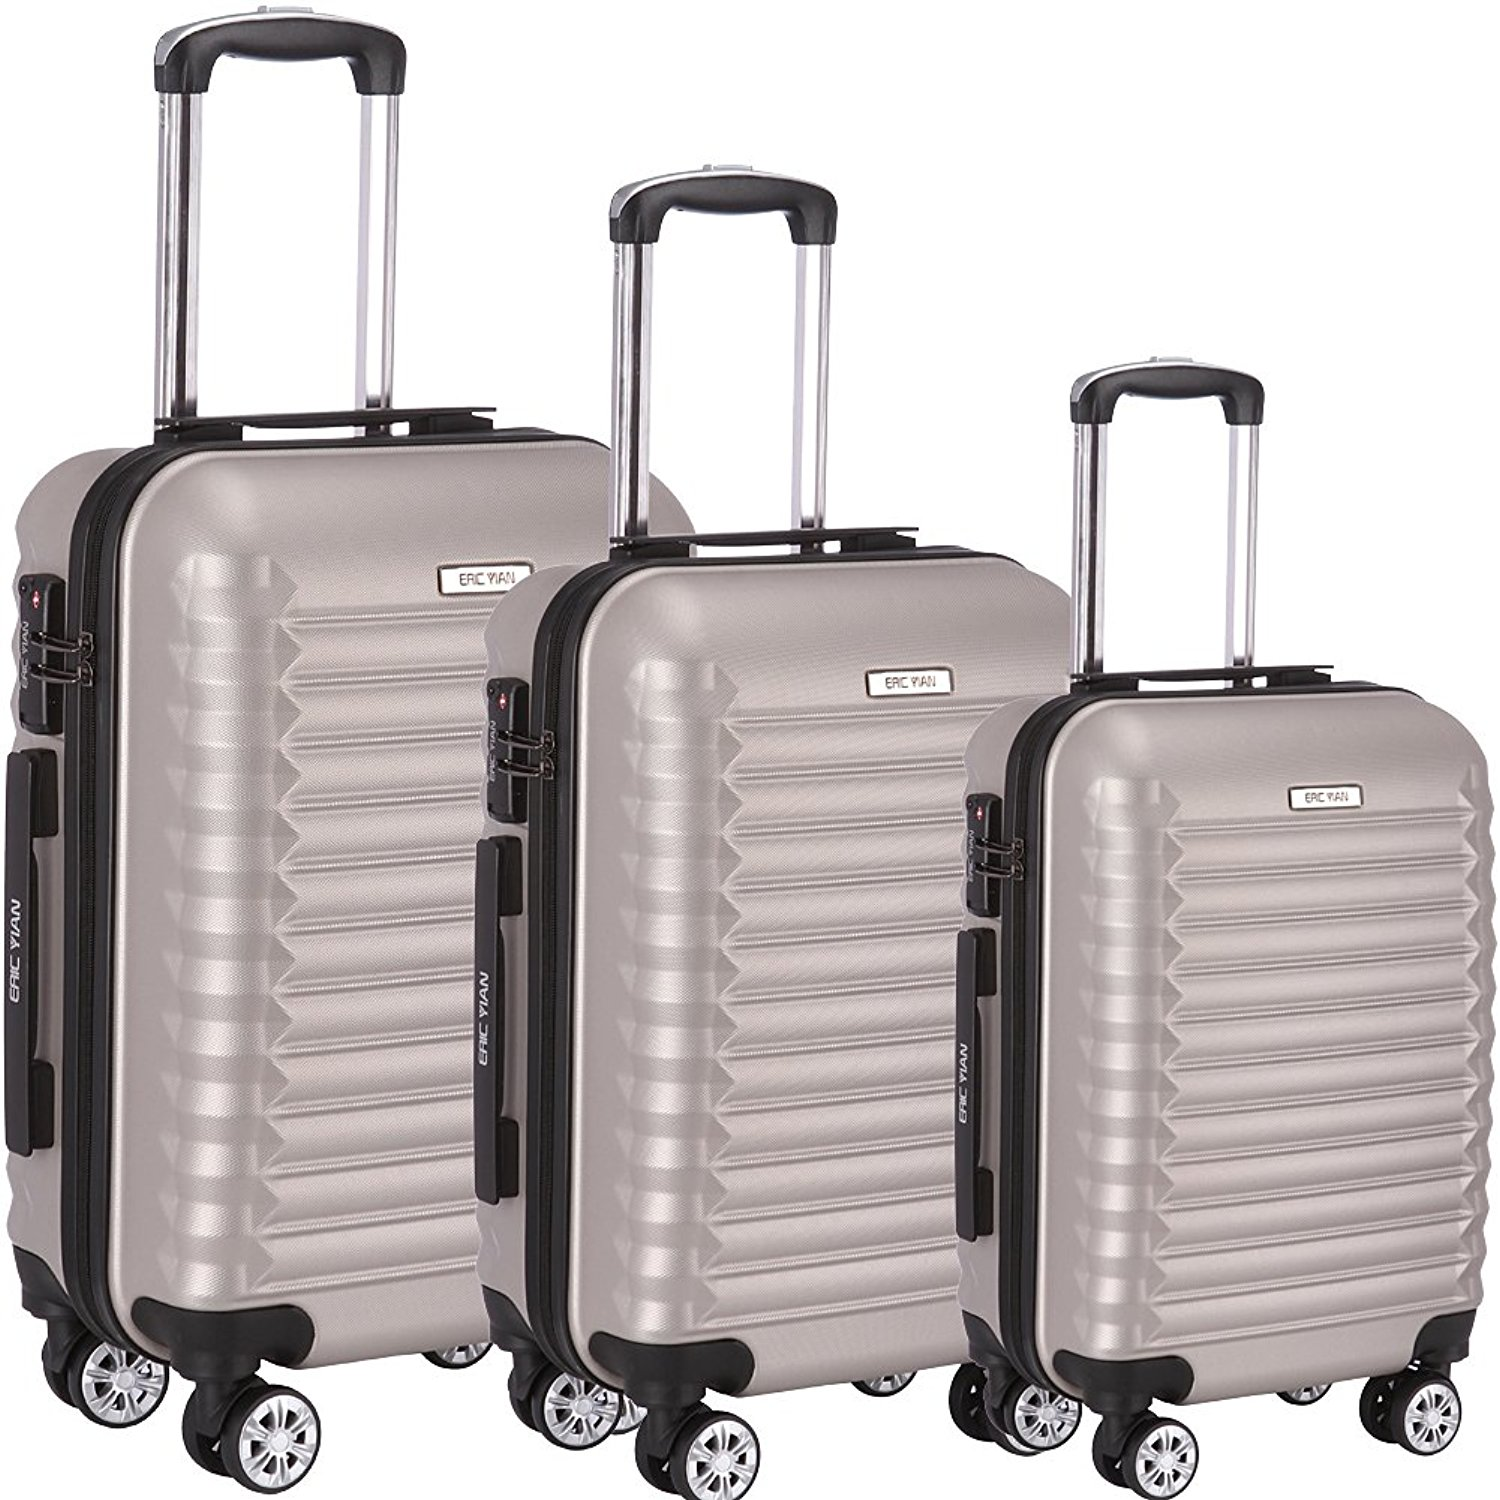 BMS 20 HardShell Luggage Travel Bag ABS Trolley Suitcase 4 Wheels Case